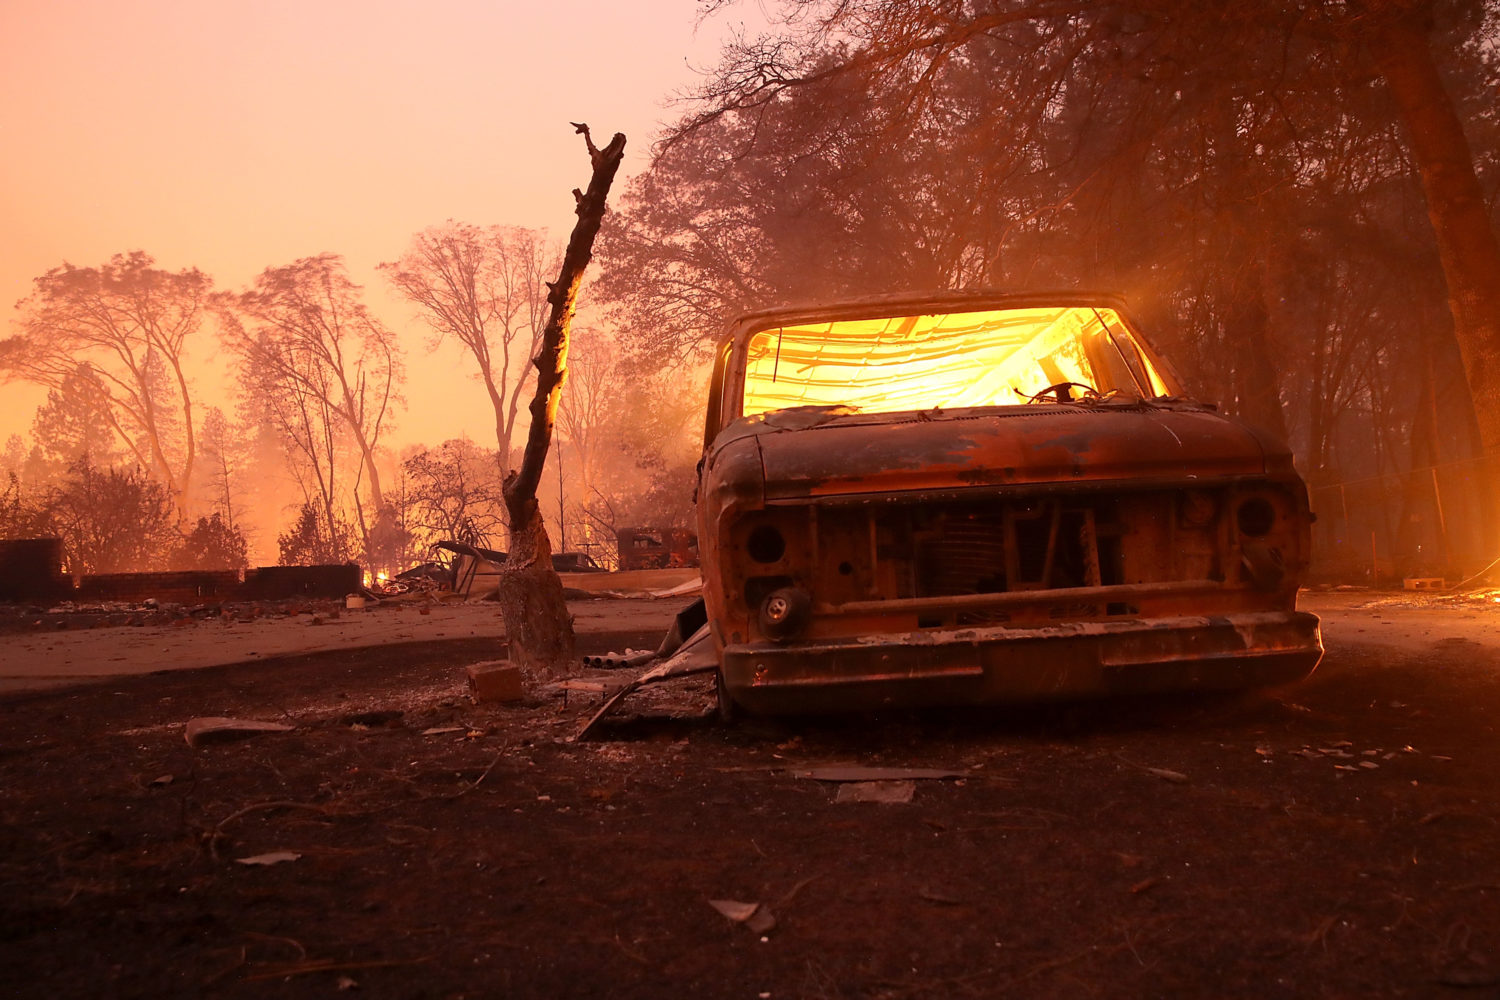 A burned-out van smolders after the Camp Fire moved through Paradise, California on Nov 8, 2018. (Photo by Justin Sullivan/Getty Images)